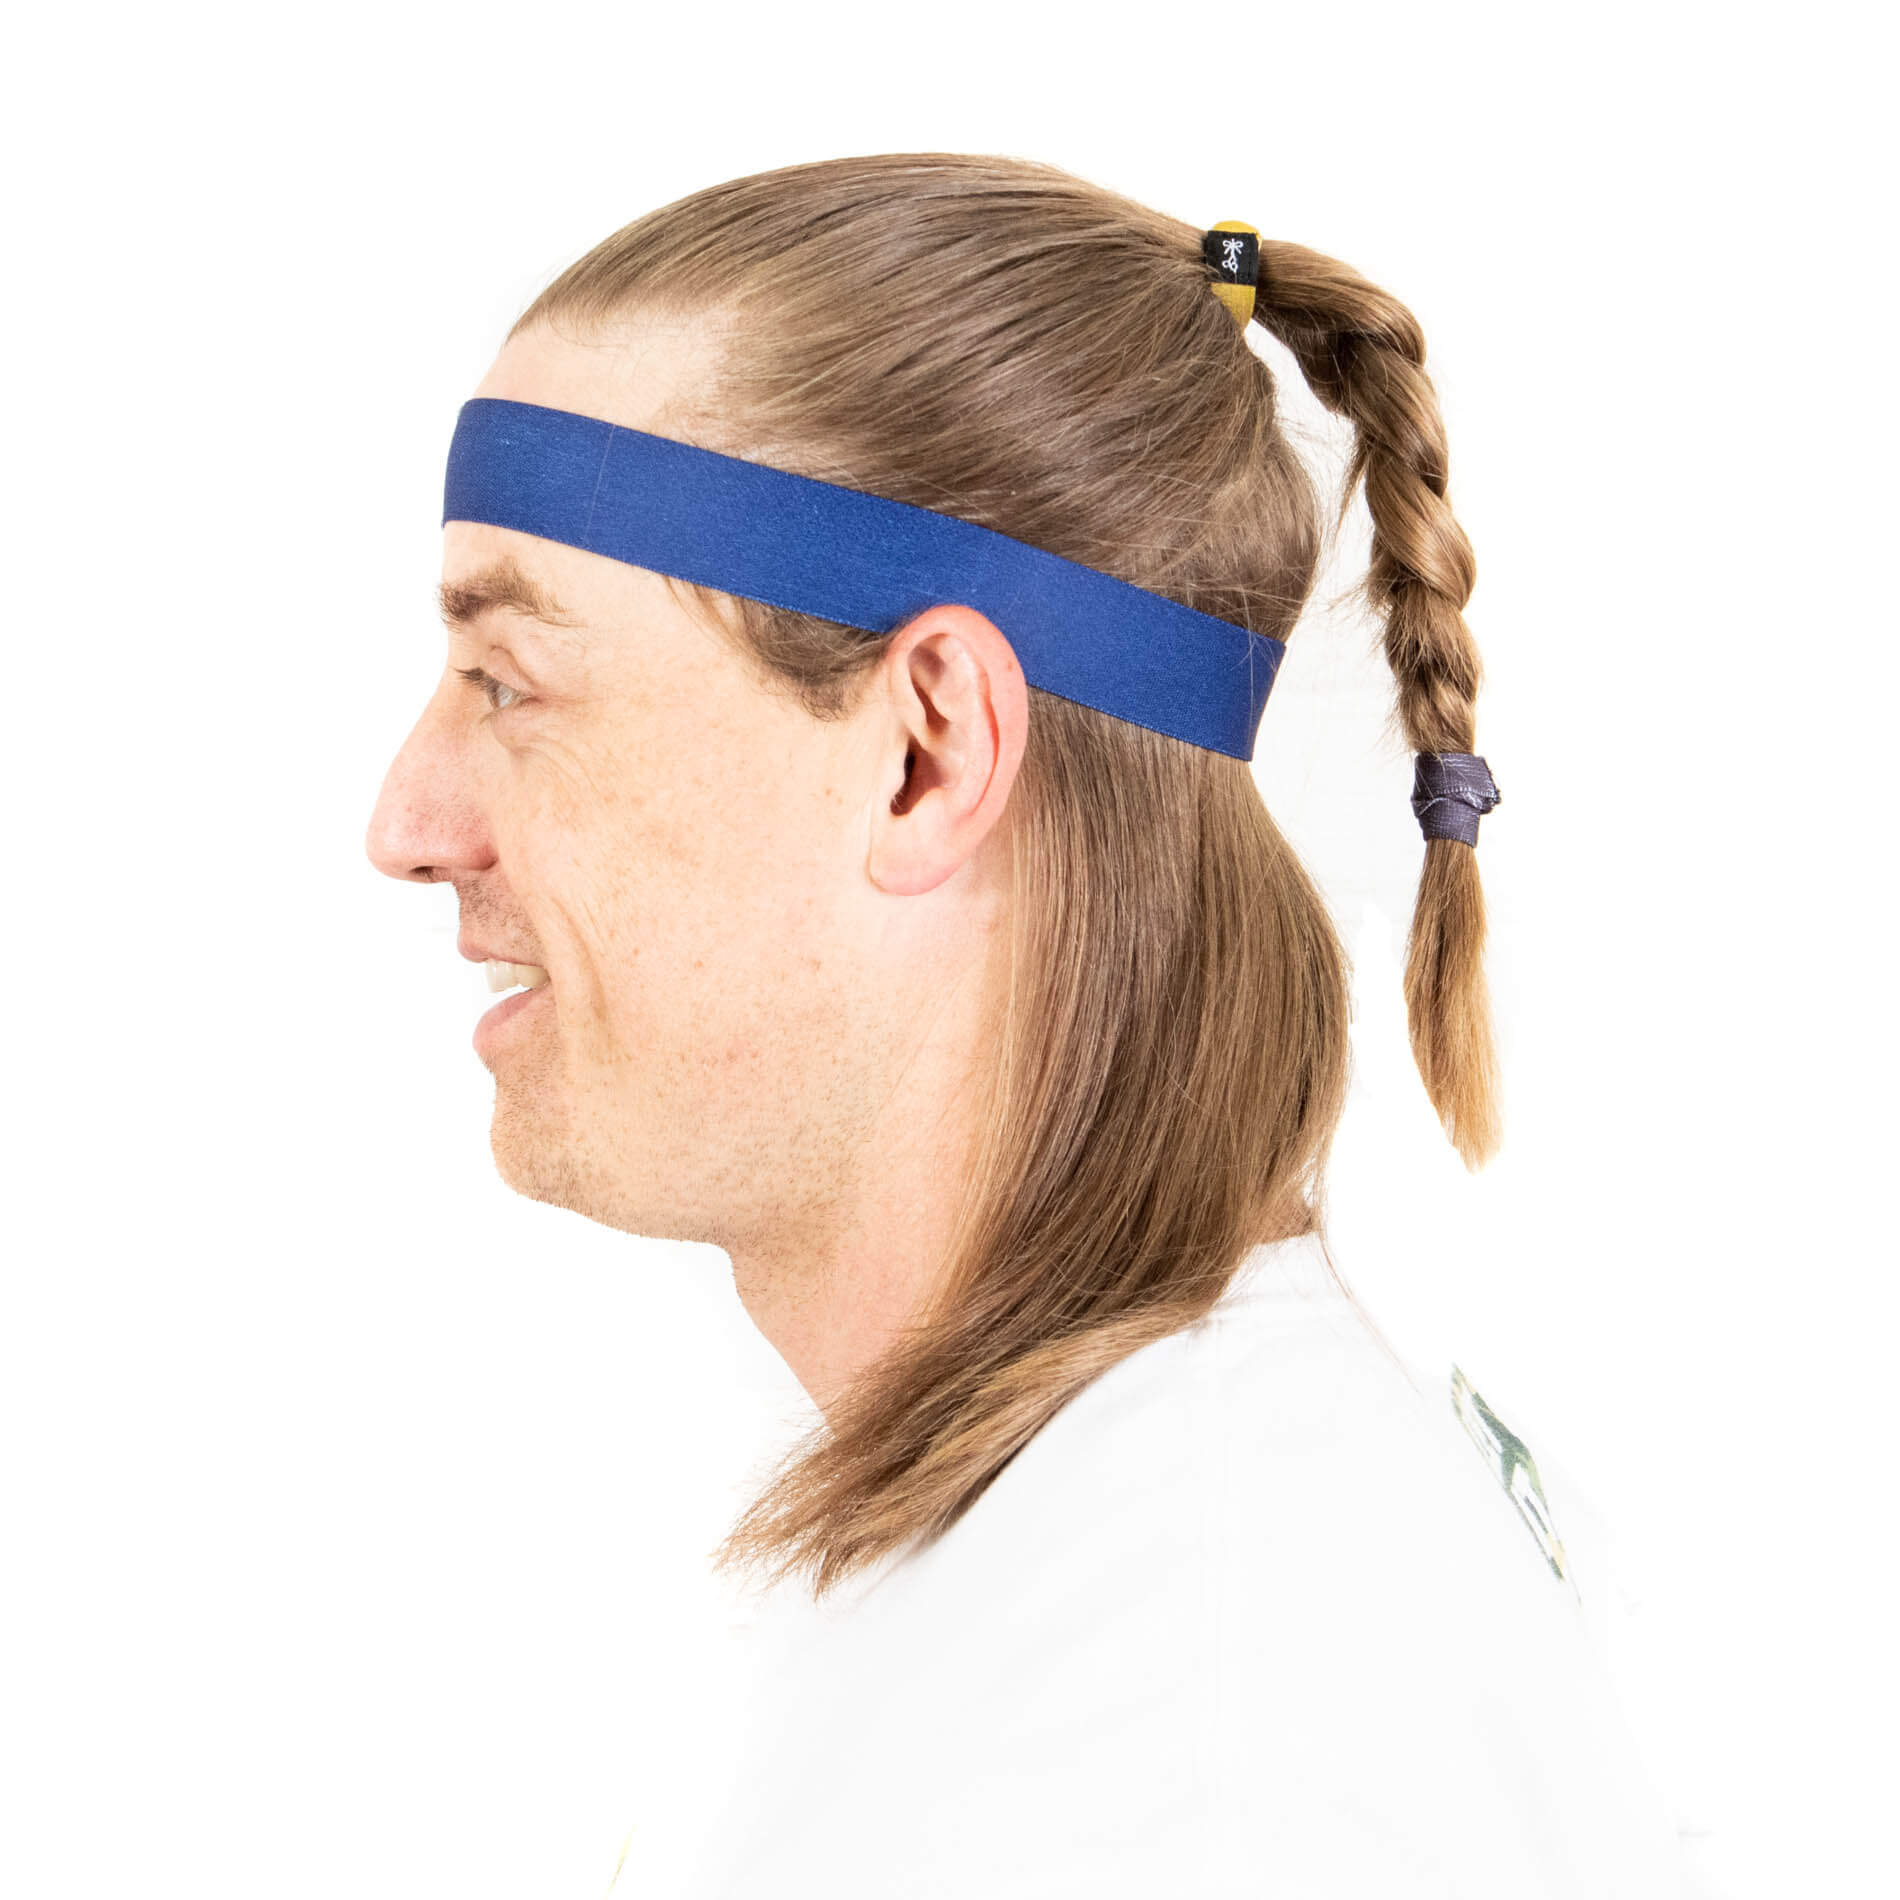 Thick headband with braid and hair ties for guys.